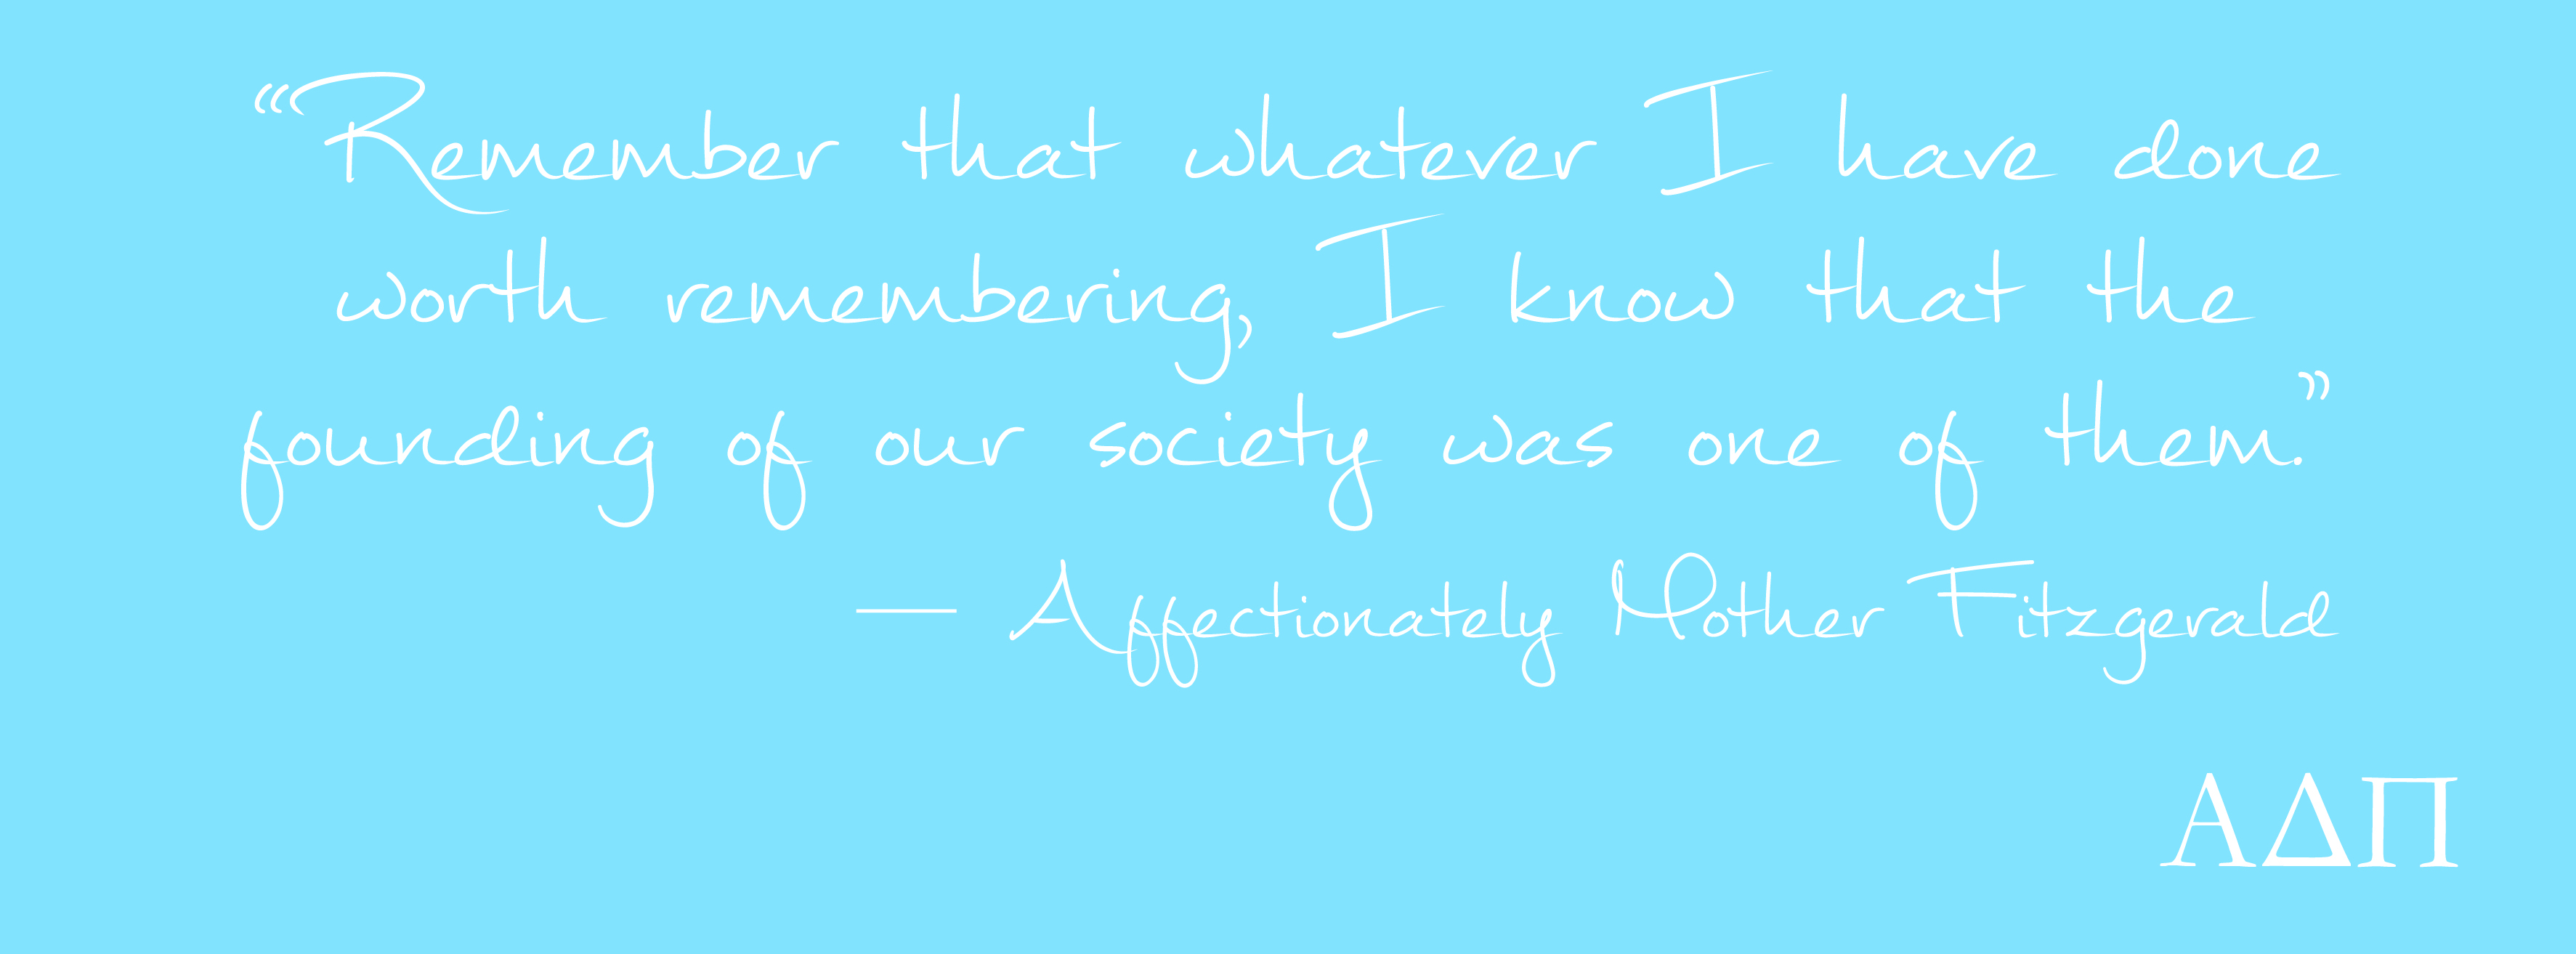 Facebook Cover Photos With Quotes Celebrate Eugenia's Birthday With These Fun Downloads  Alpha